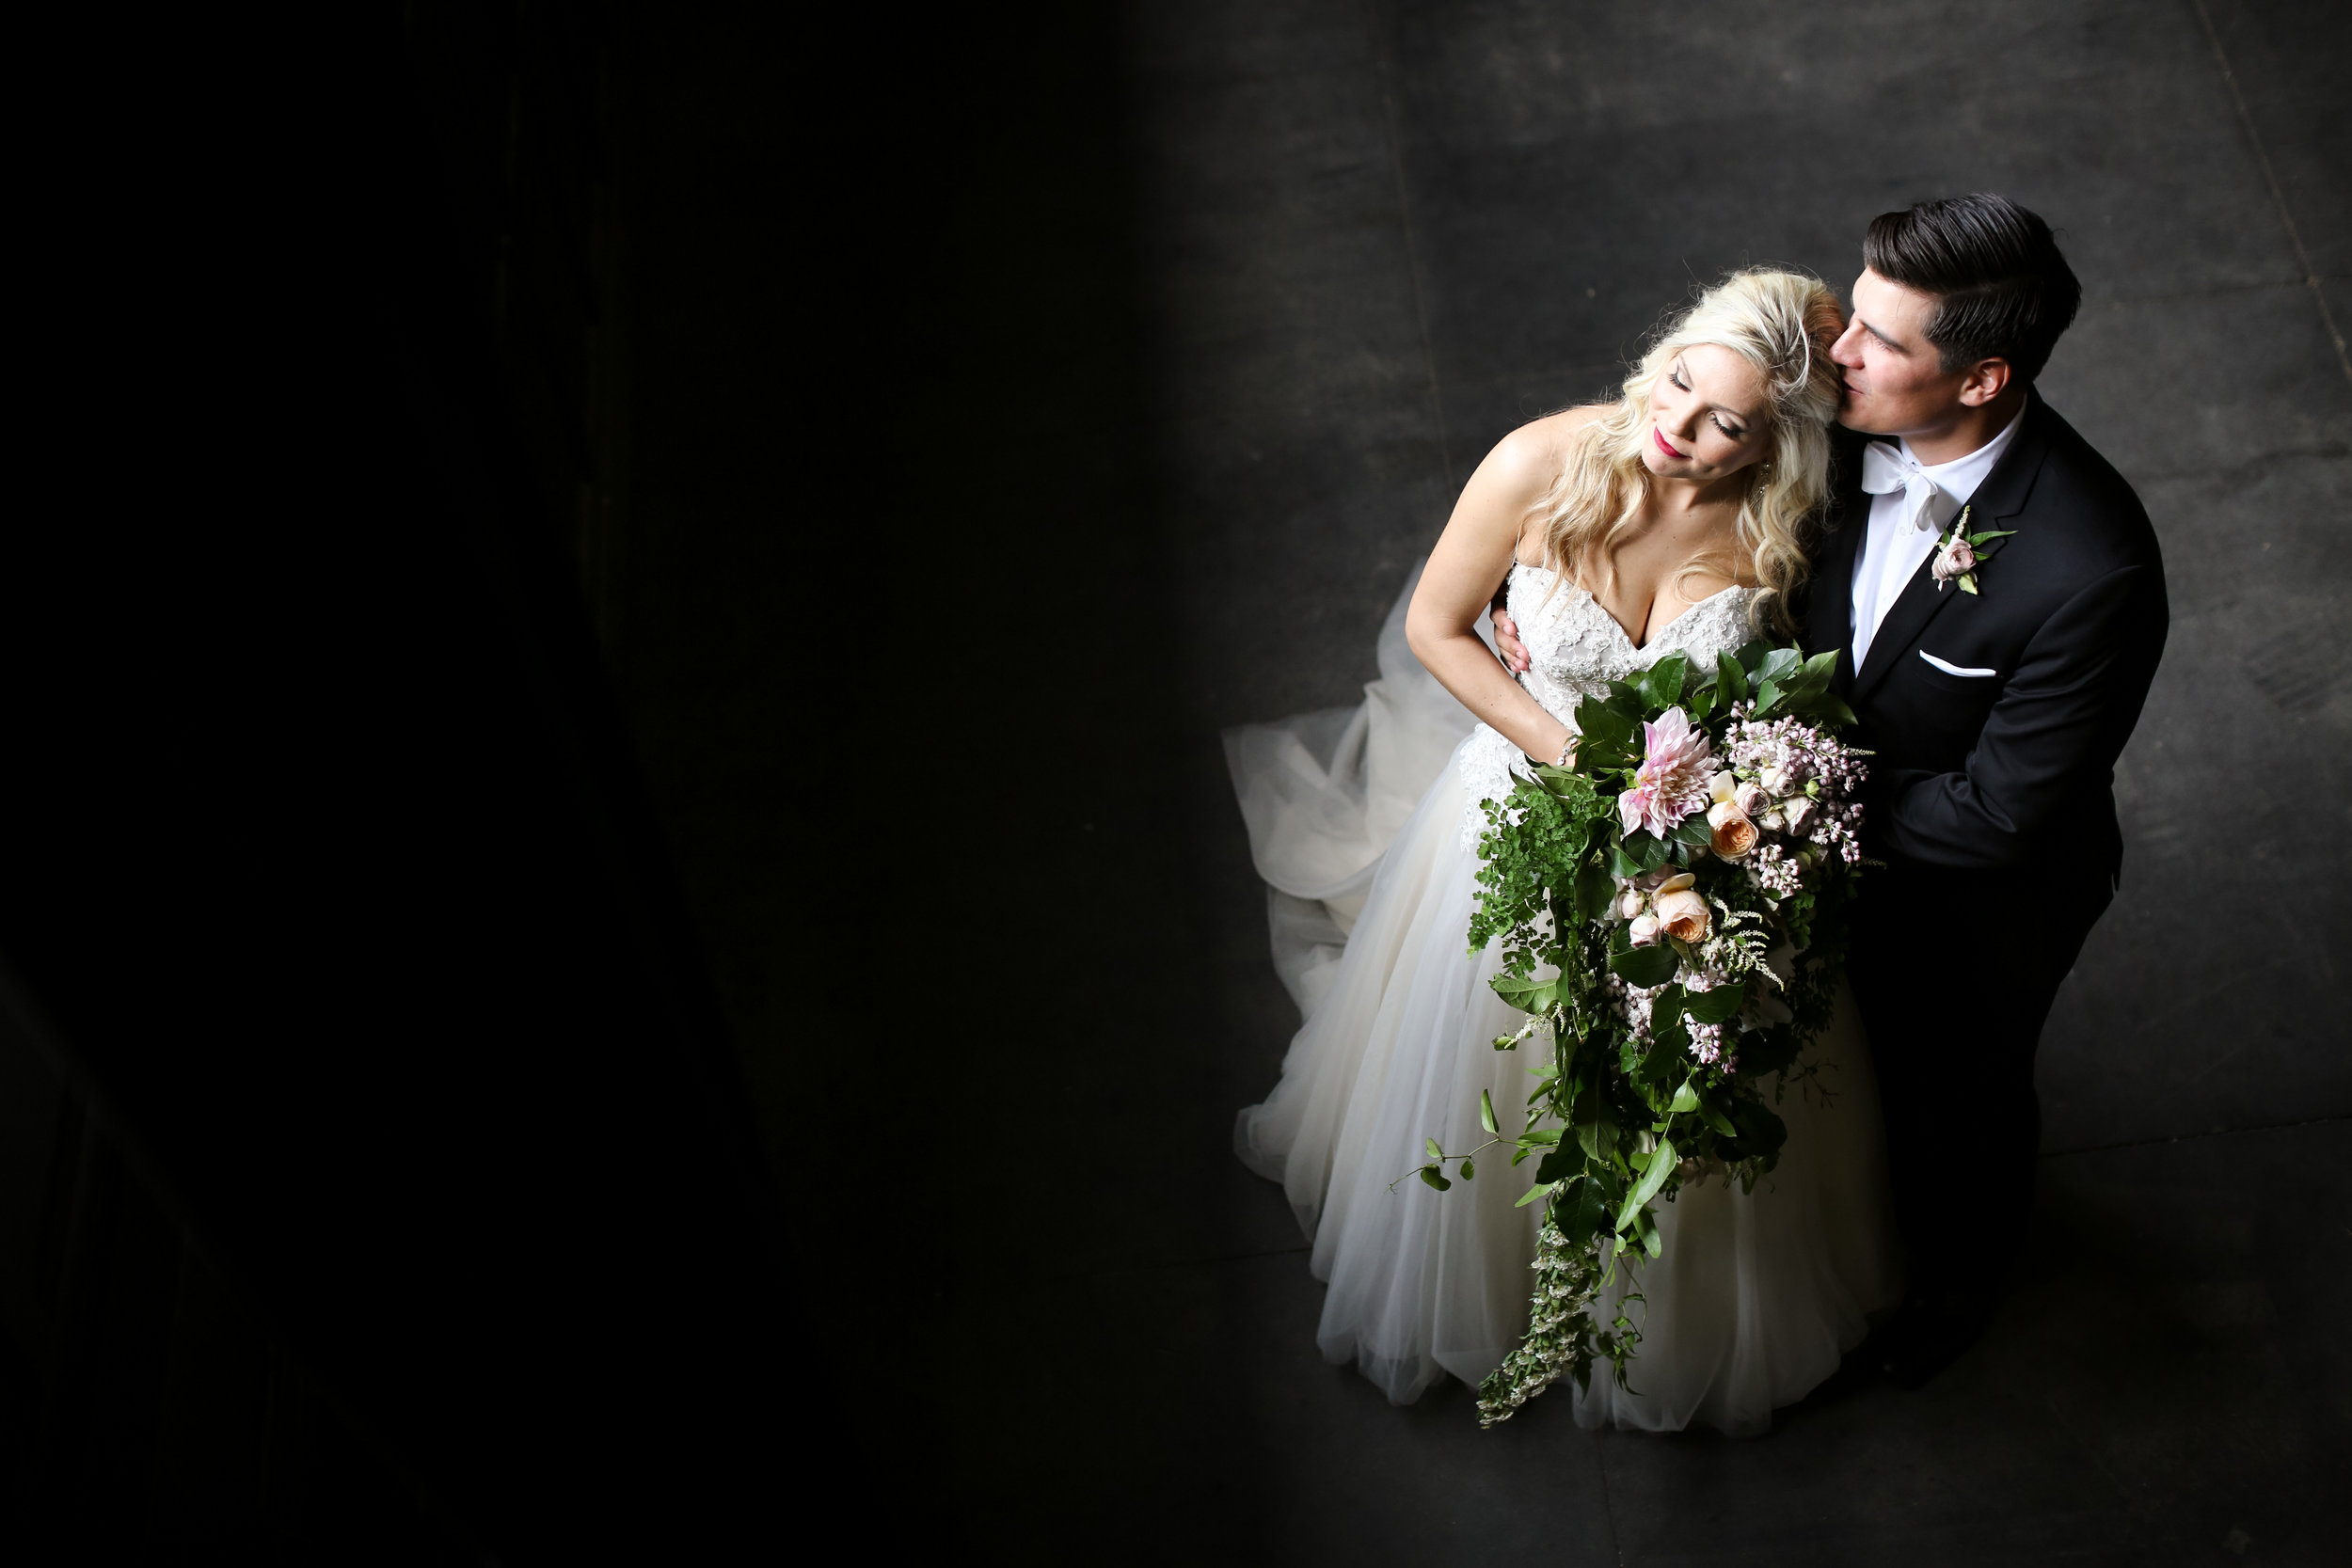 Photographer: Vick Photography ( here is their blog post)  Makeup: Makeup by Mindie   Hair: Hair by Theresa    Dress: The Wedding Shoppe   Venue: Aria    Planning: Elisa ,Simply Elegant   Cinema: Better Together    Florist: Whimsy Designs    Dessert: Cafe Donuts    DJ: Instant Request